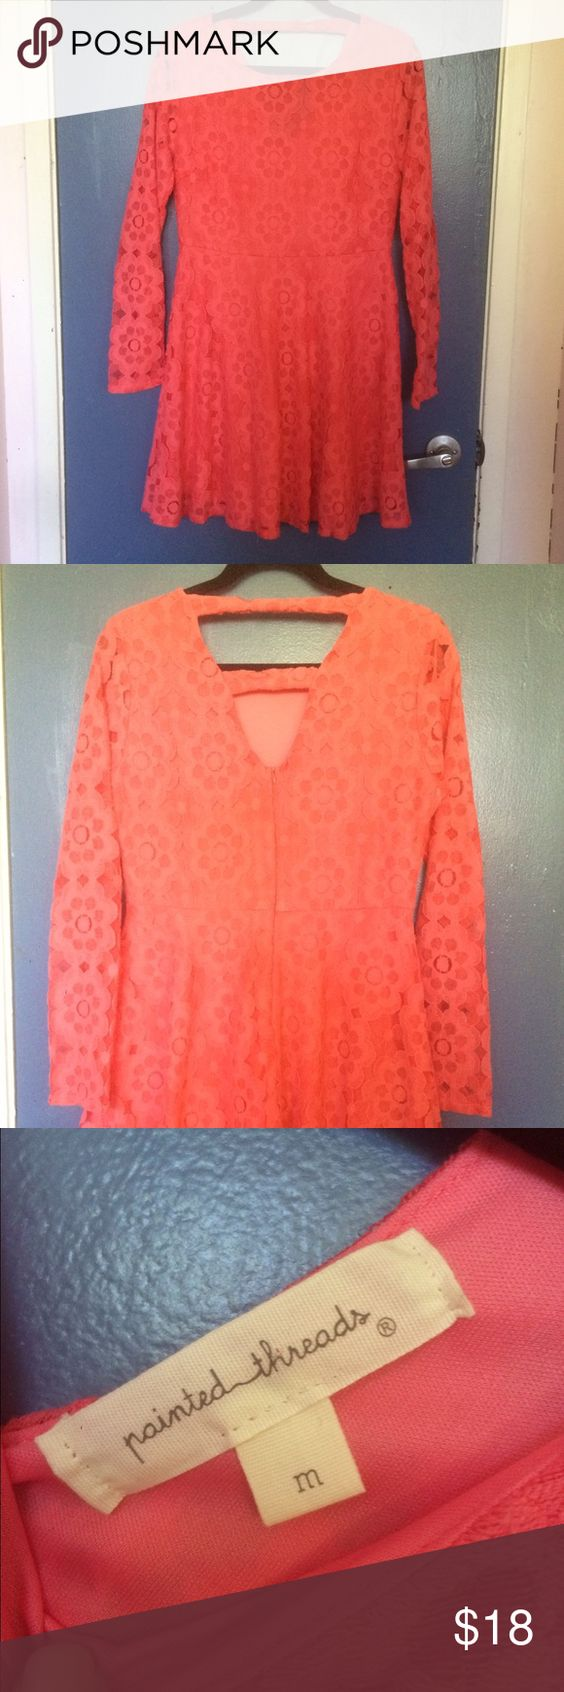 Coral/Peach Eyelet Dress Perfect condition only worn once. Eyelet flower dress. Pink/Coral/Peach color. Length is just above the knees. Painted Threads Dresses Midi